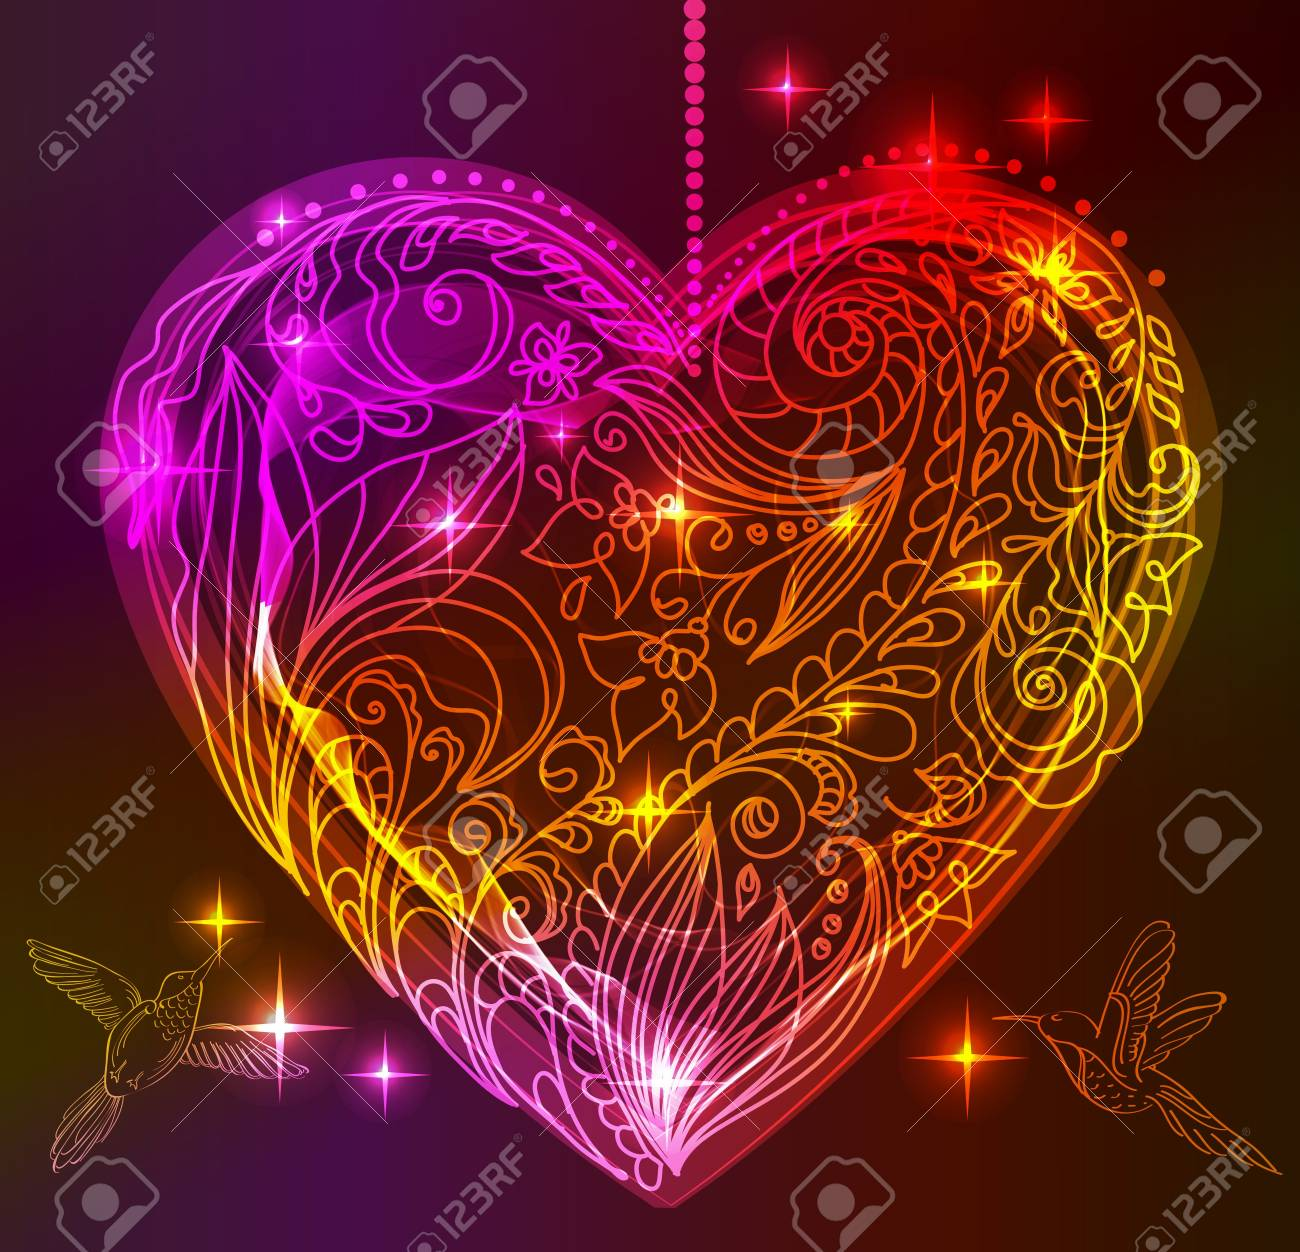 valentine card with floral heart and birds, illustration Stock Vector - 15732268